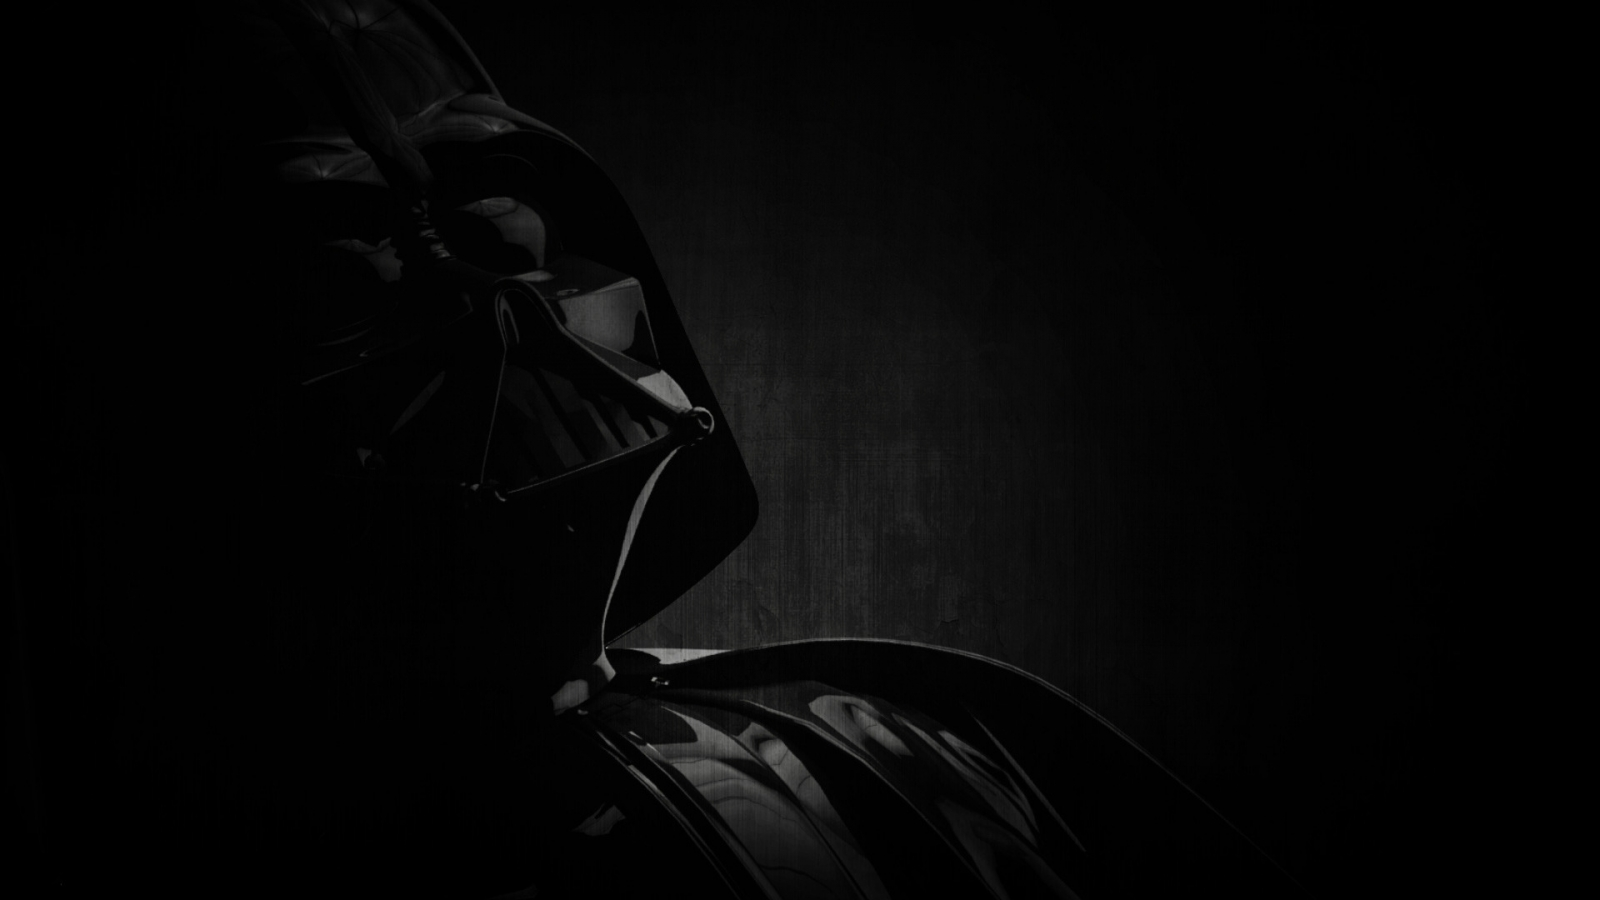 Darth Vader Character, for 1600 x 900 HDTV resolution